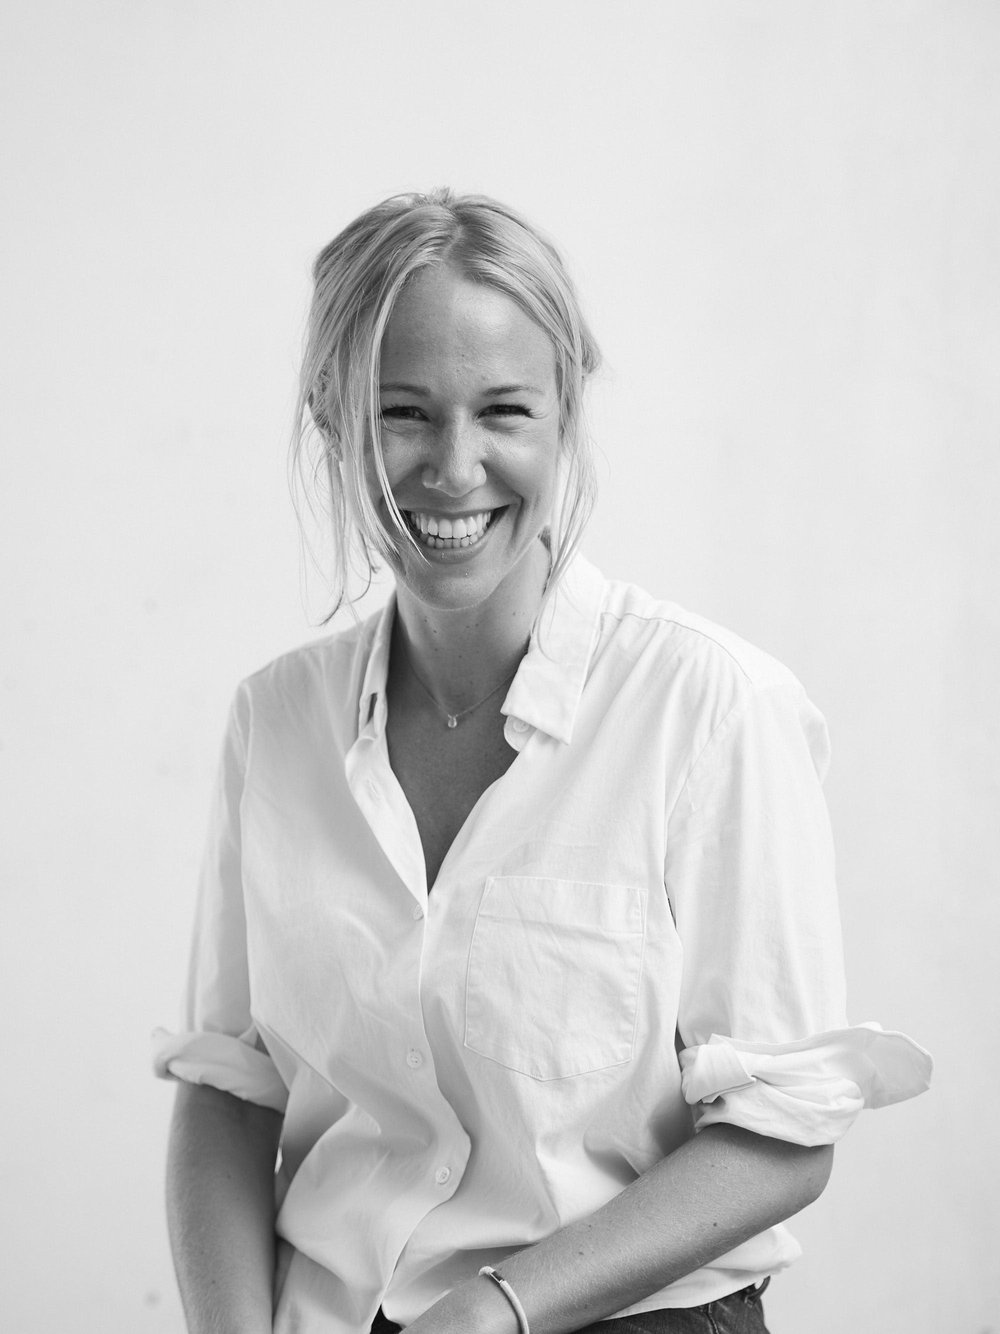 NAME : Lauren Holmes LOCATION : London, United Kingdom SERVICES :∆ Kundalini Yoga teacher ∆ Theta Healer ∆ Story-telling ∆ Content Strategy ∆ Conscious Hospitality Consulting